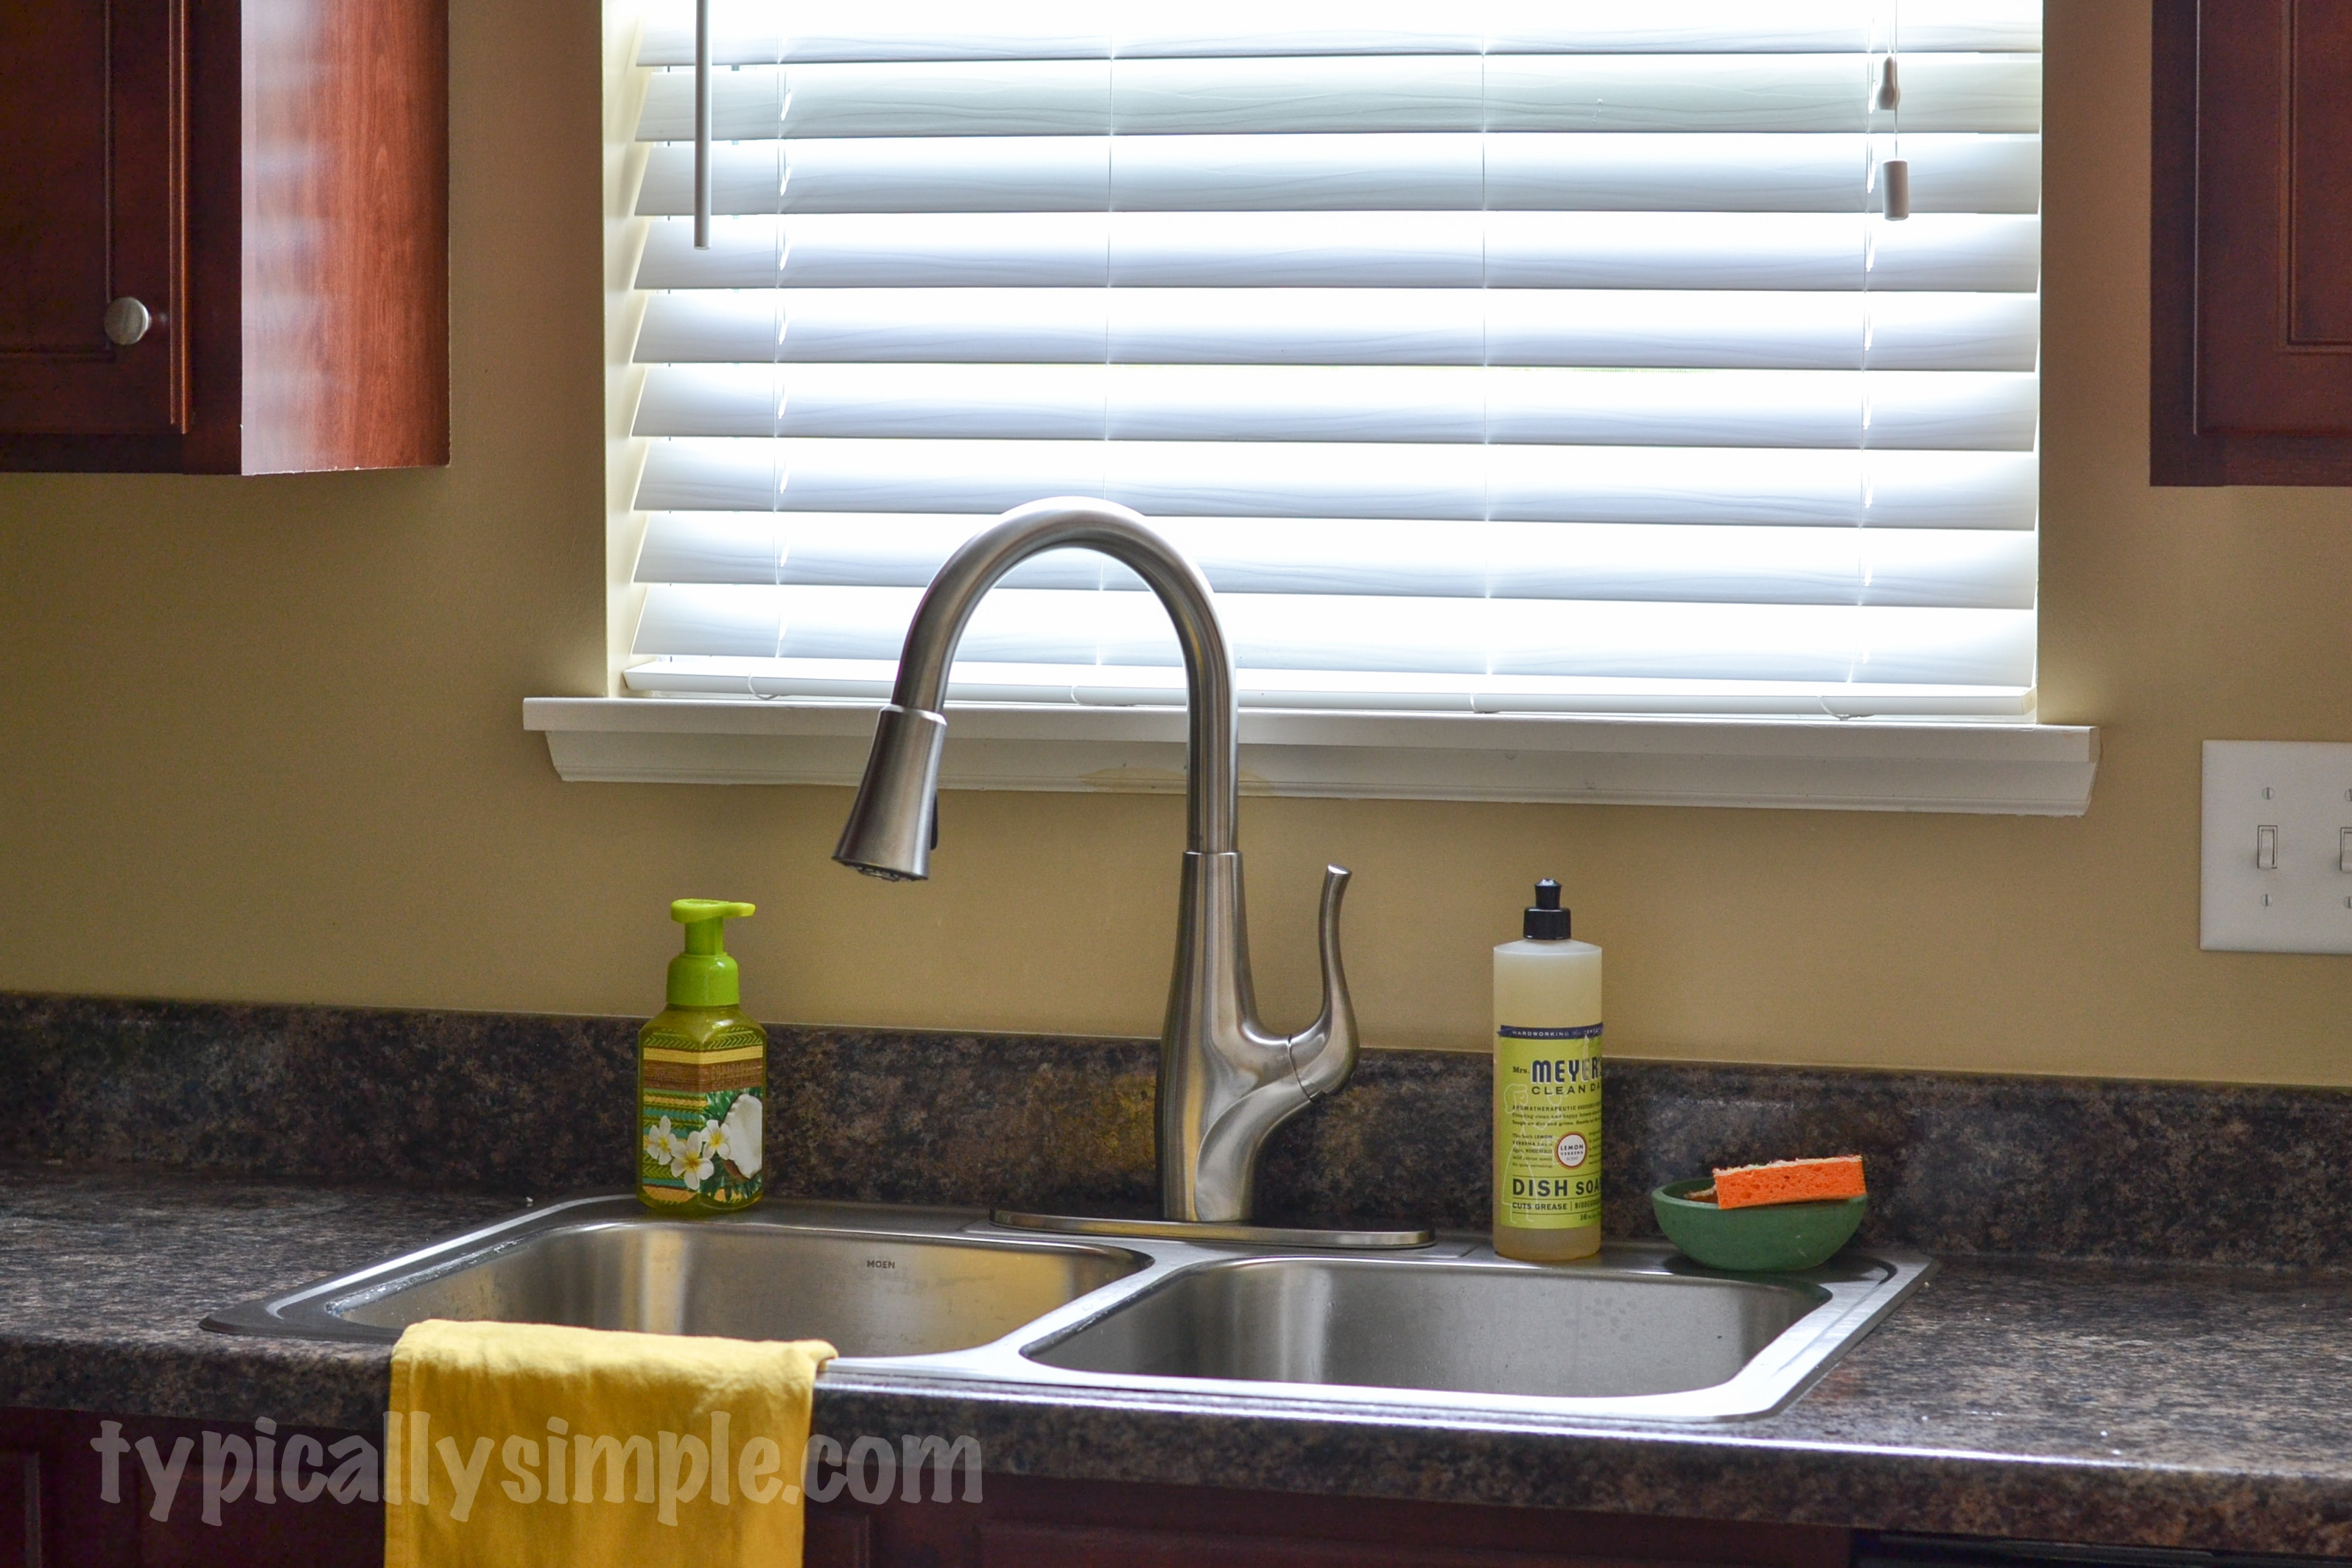 Whole Kitchen Faucets Easy To Install Water Filtration System Clarify Faucet